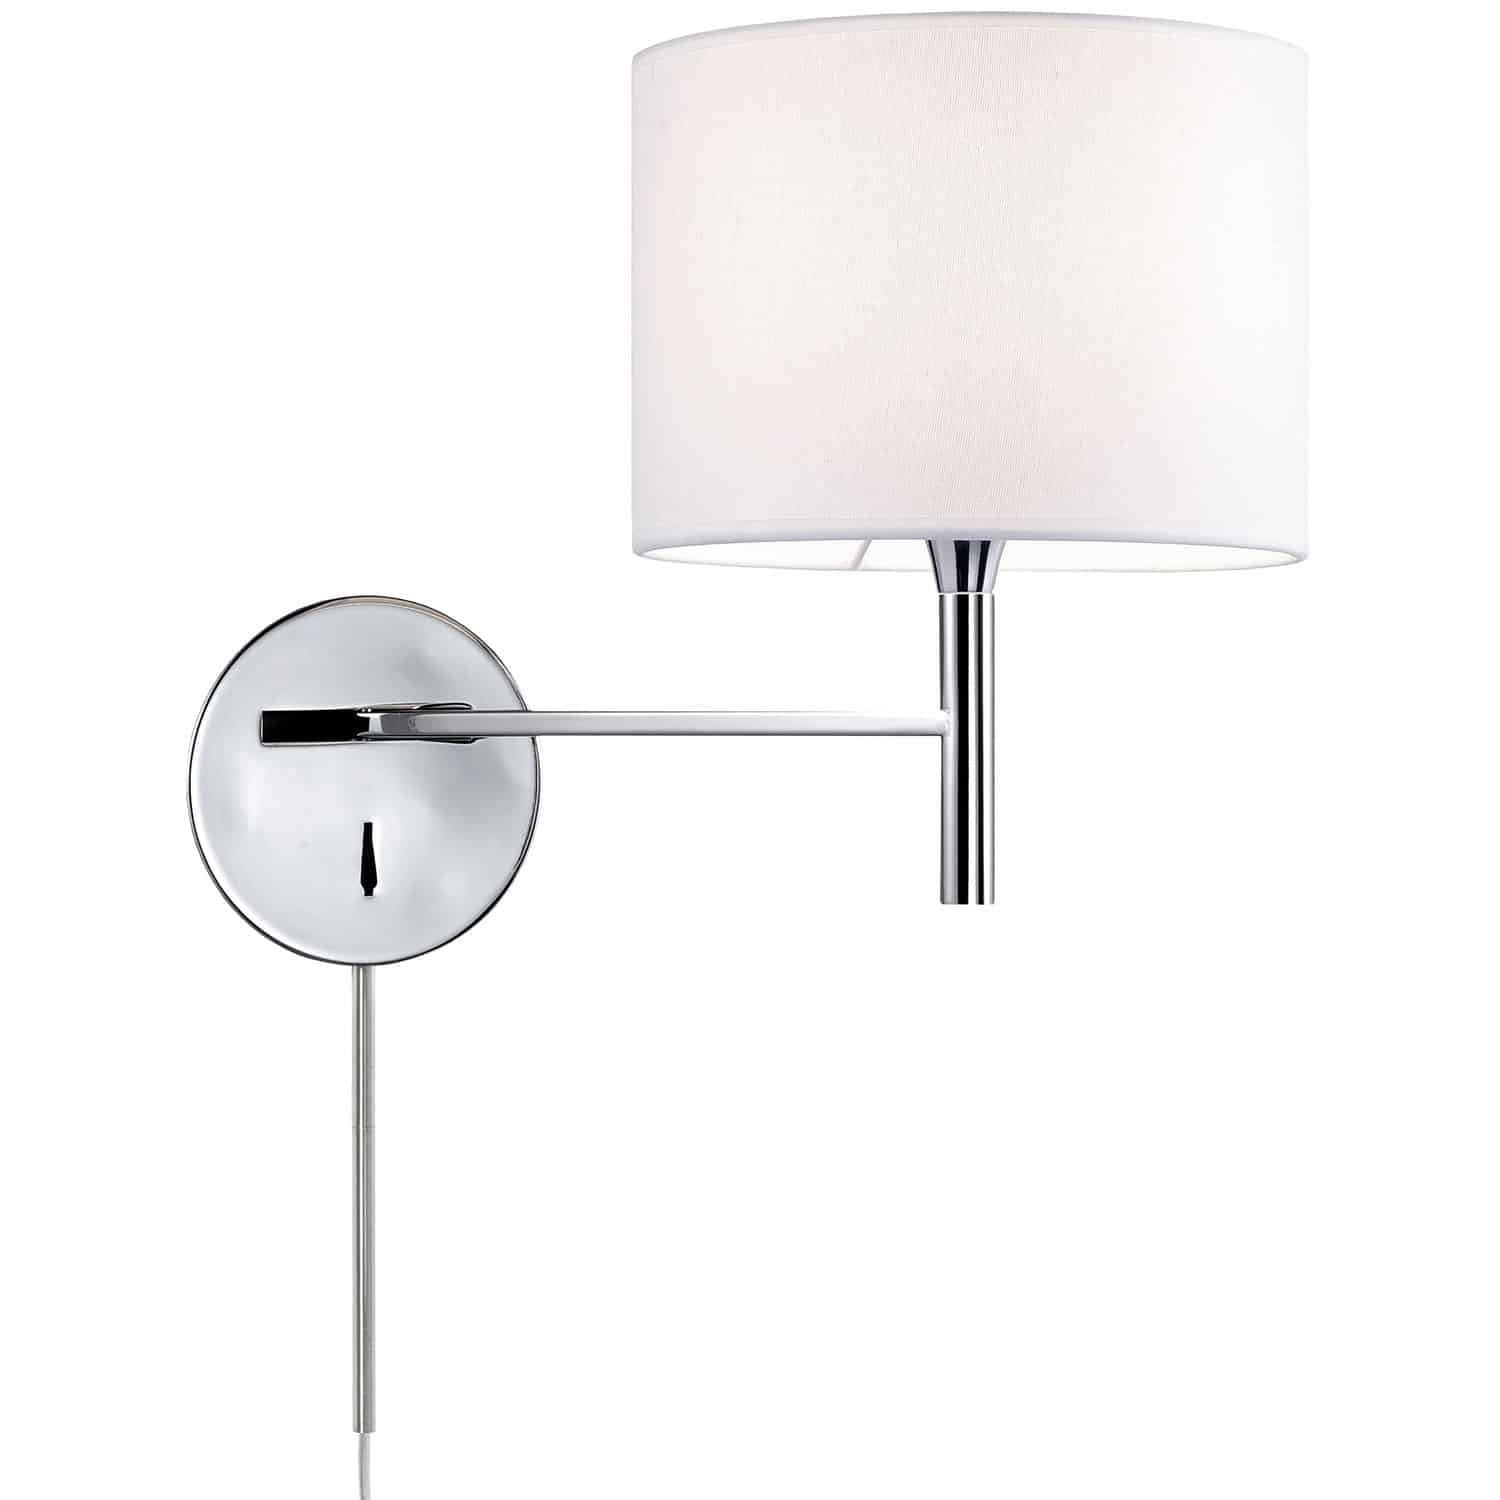 1 Light Incandescent Wall Sconce, Polished Chrome Finish with White Shade